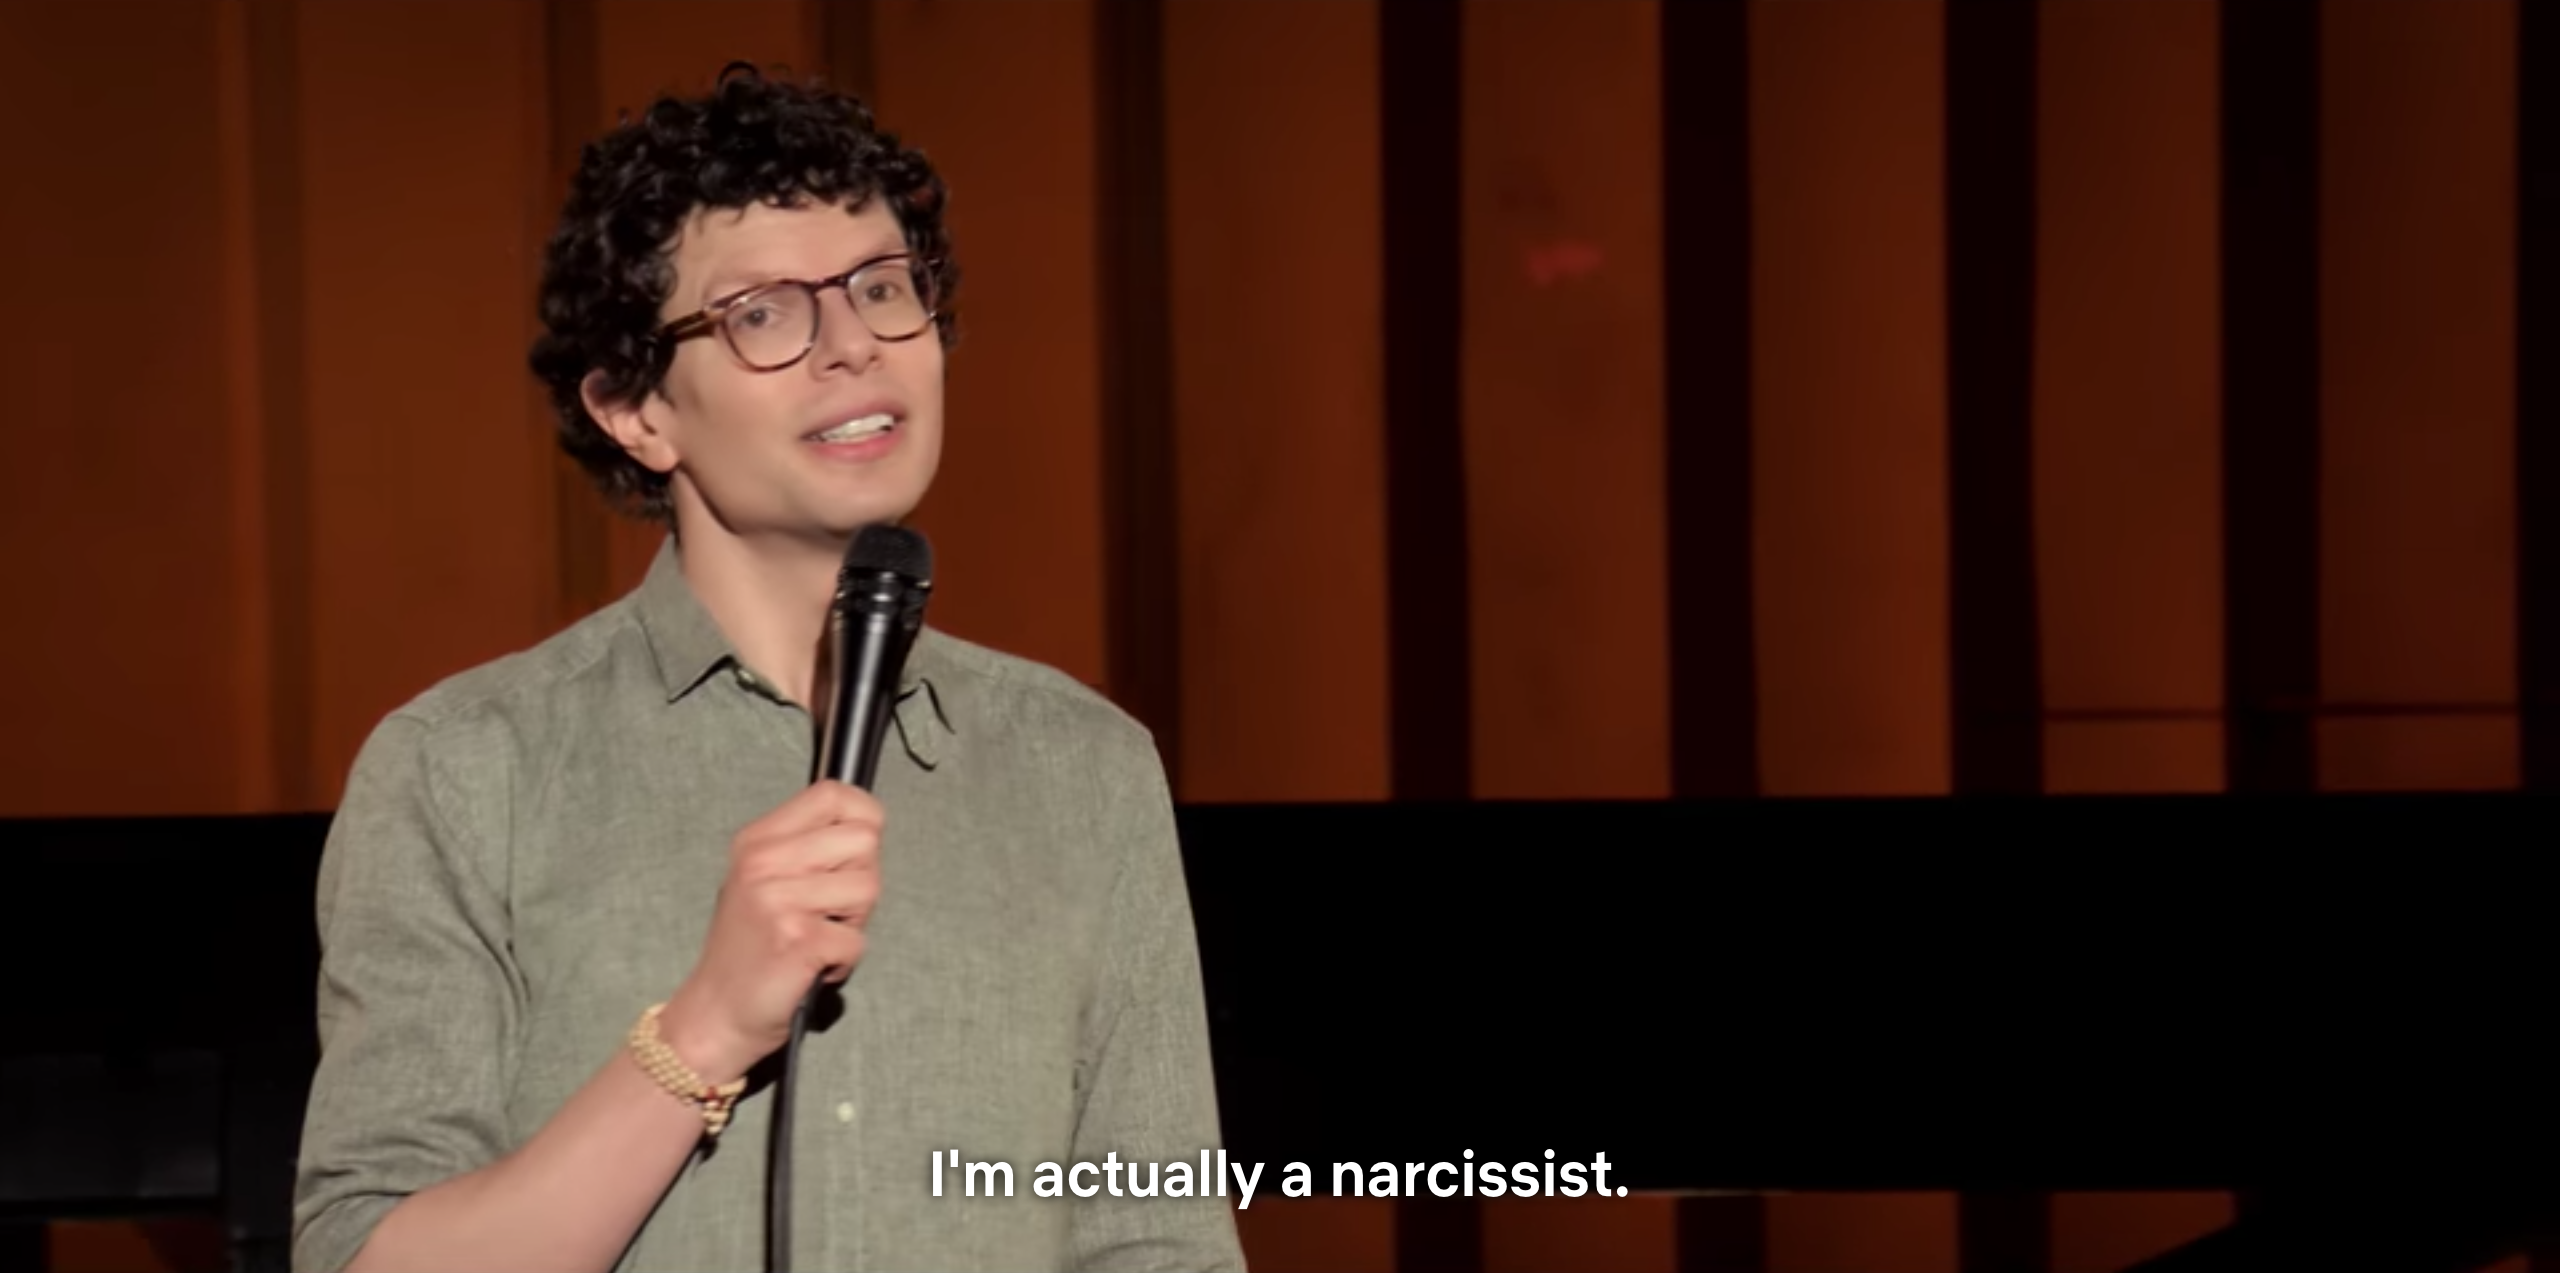 Sad, Spiritual, Horny: Why Simon Amstell Is the Definitive